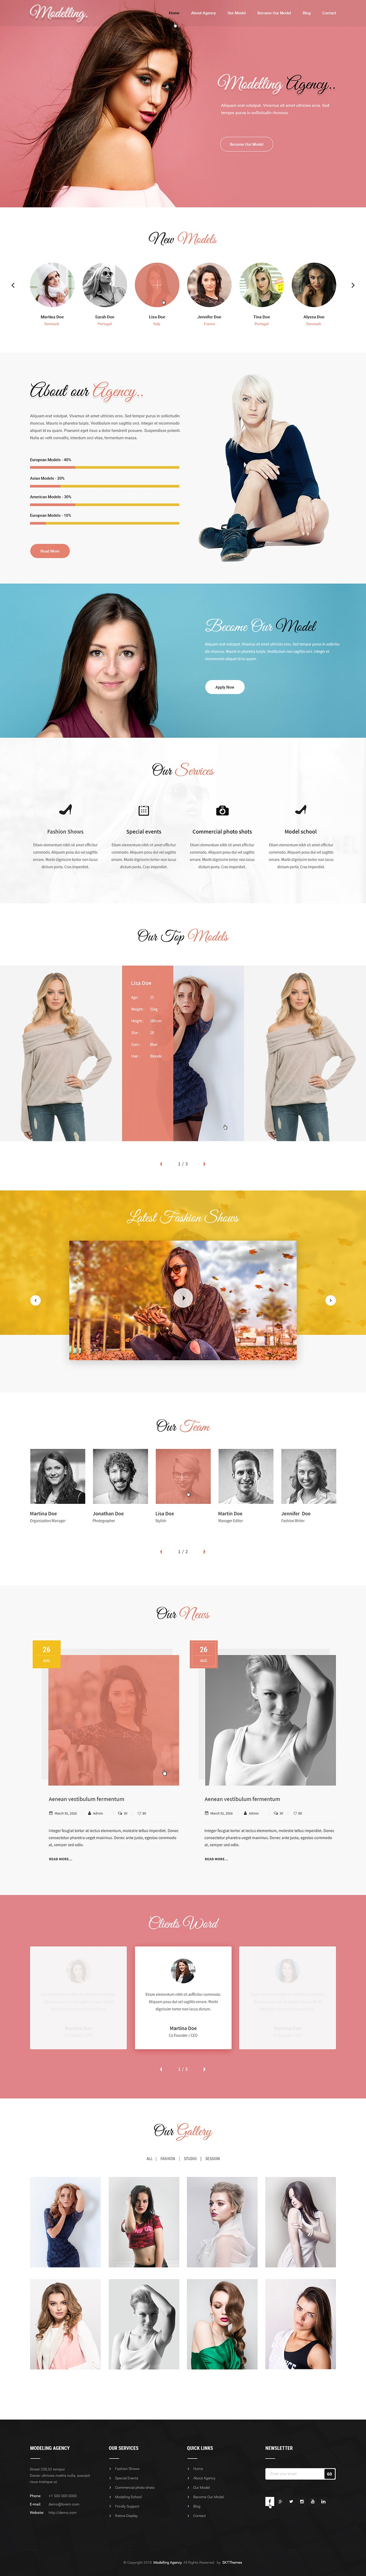 Fashion design wordpress theme free Charlotte's Web Lapbook Life With The Family O